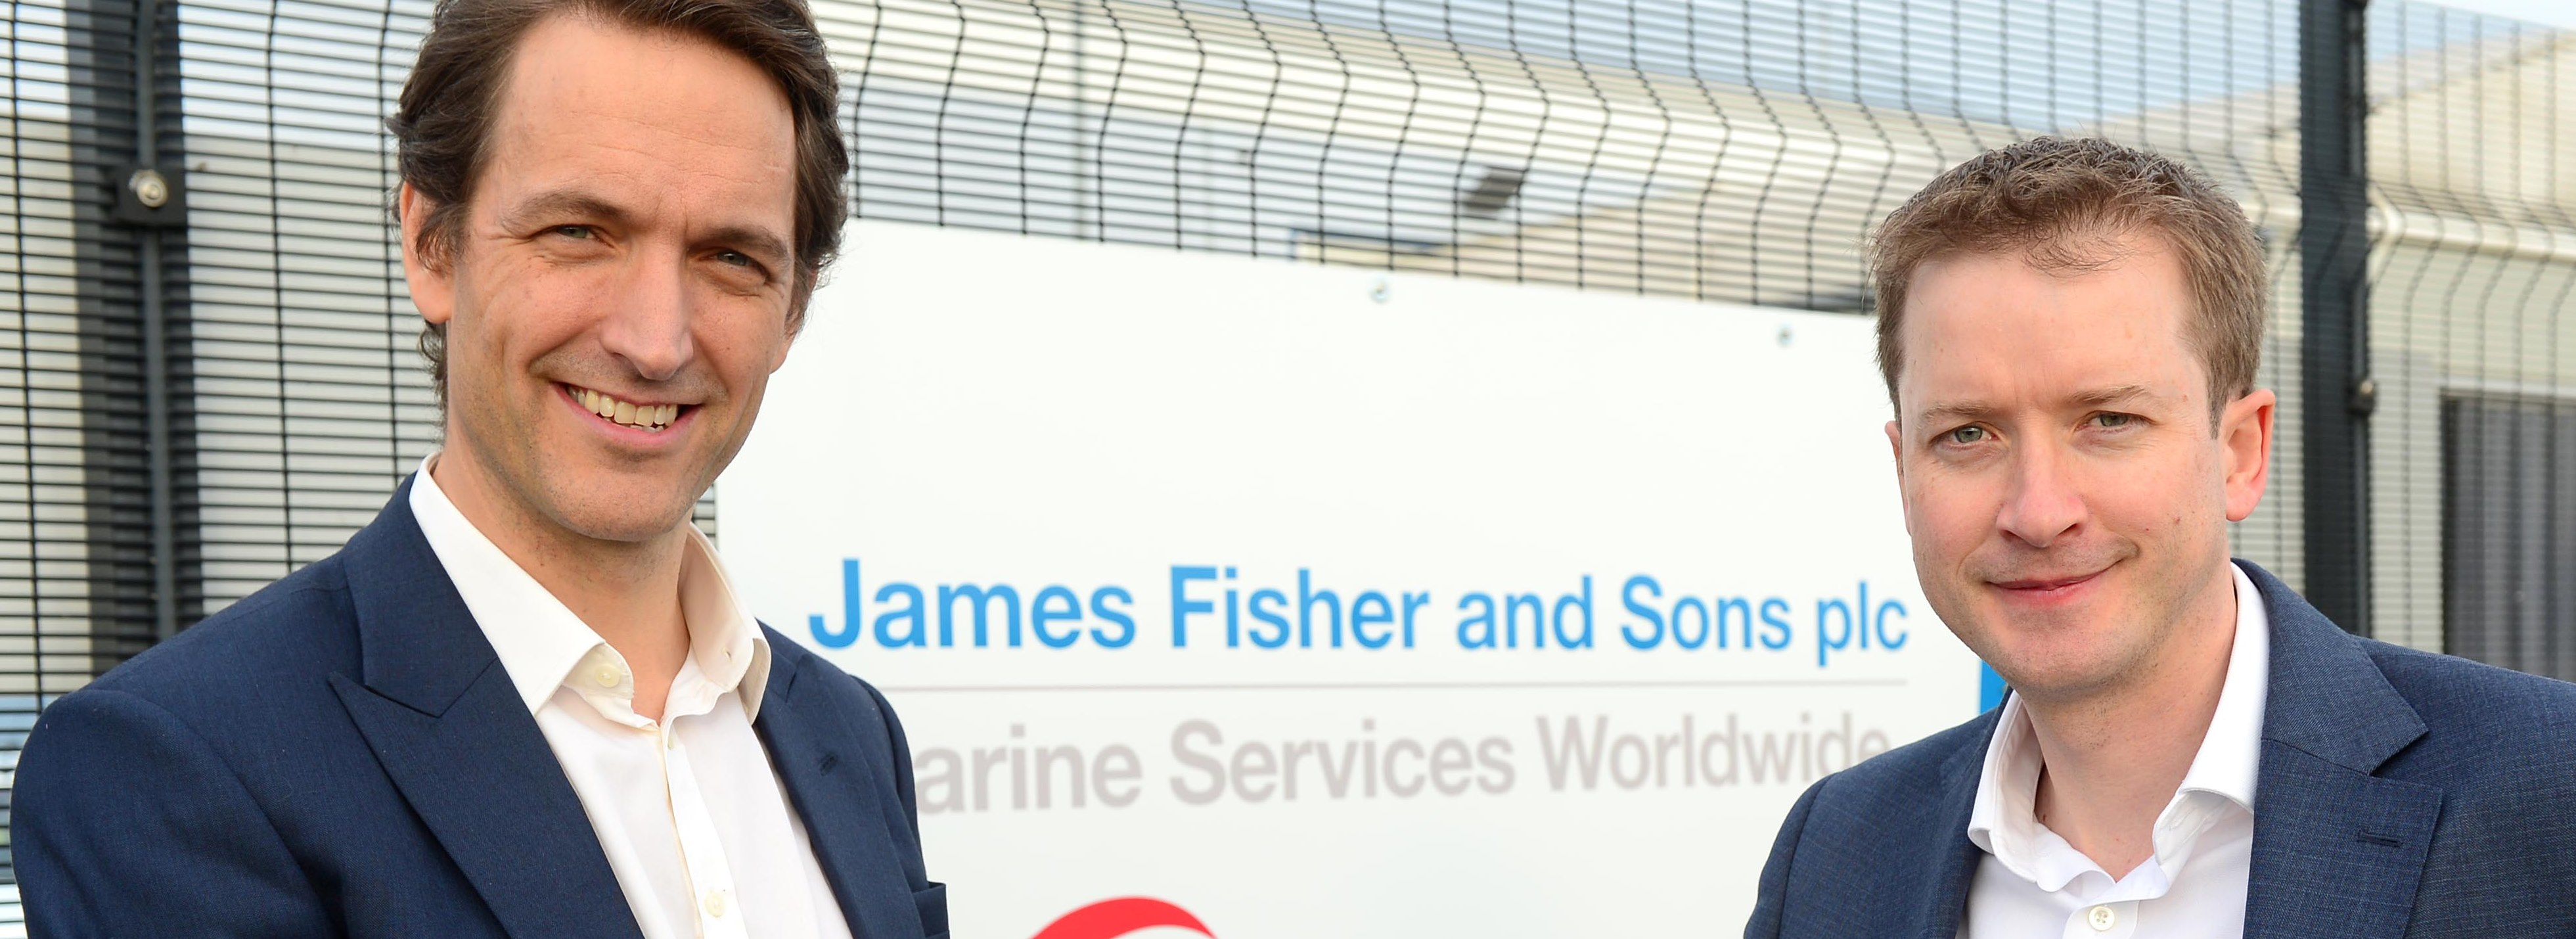 Triton Knoll awards contract to UK's James Fisher Marine Services as firm expands into Grimsby